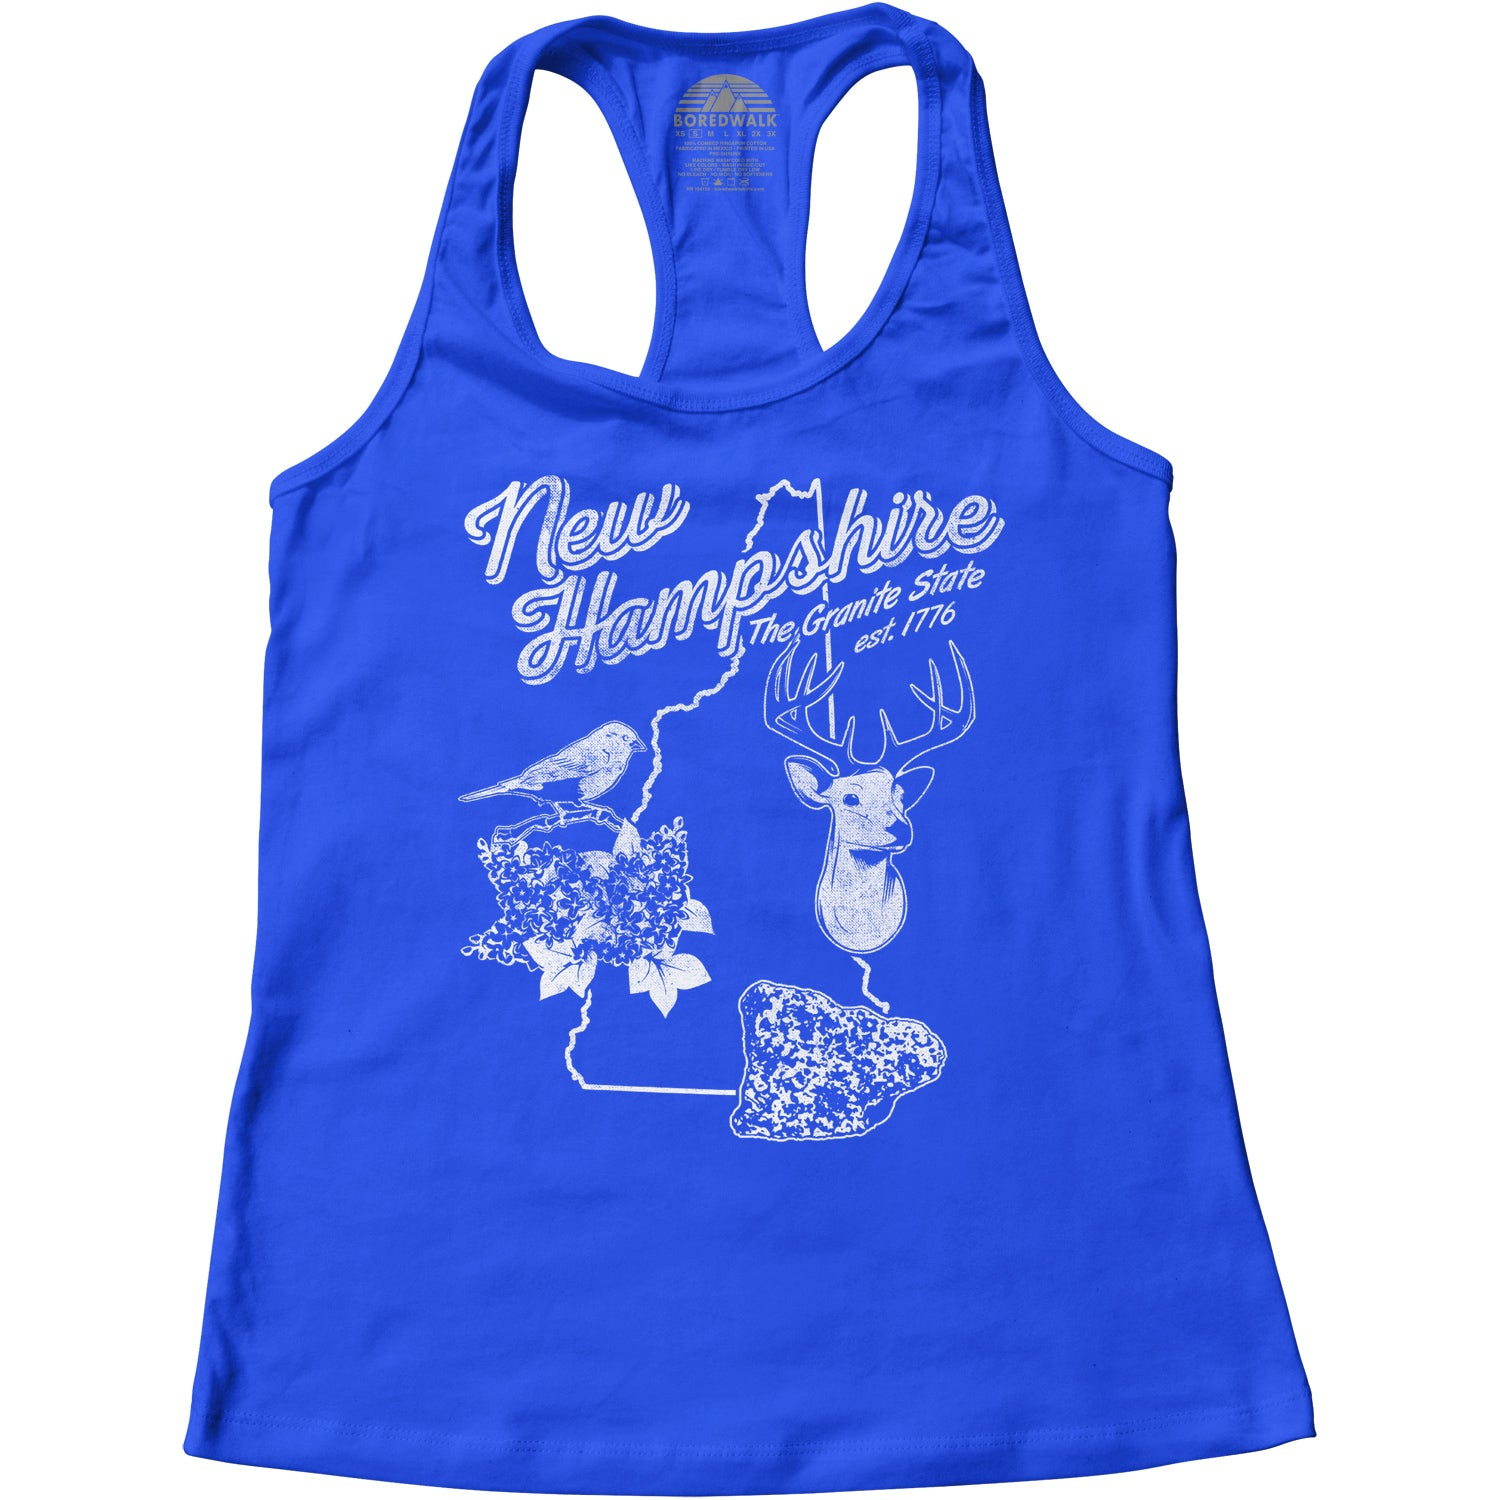 Women's Vintage New Hampshire Racerback Tank Top